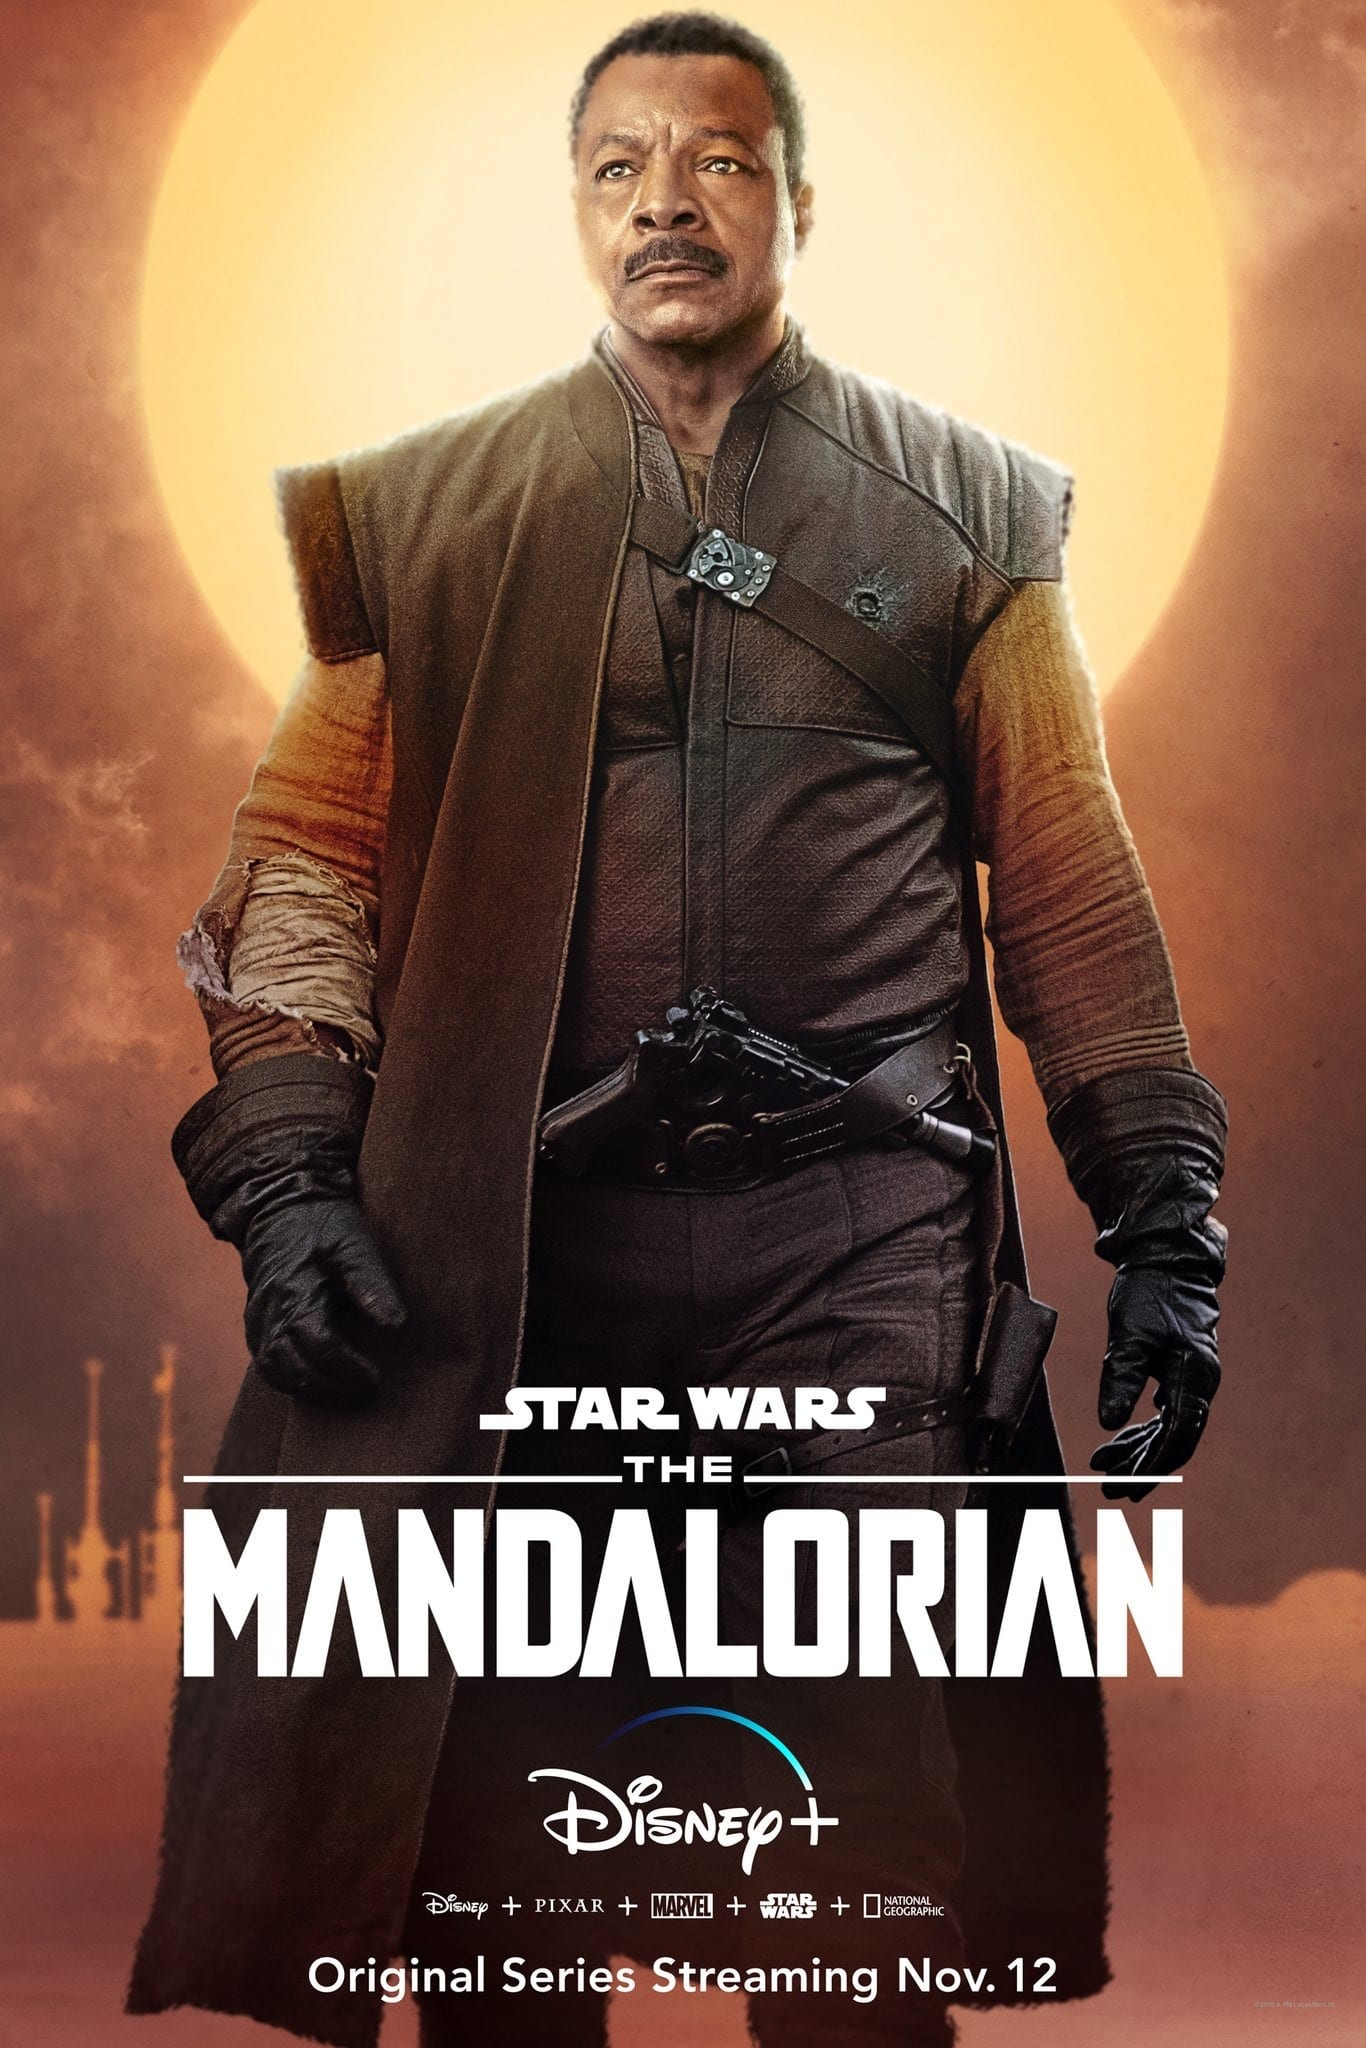 The Mandalorian Character Posters Carl Weathers as Greef Karga